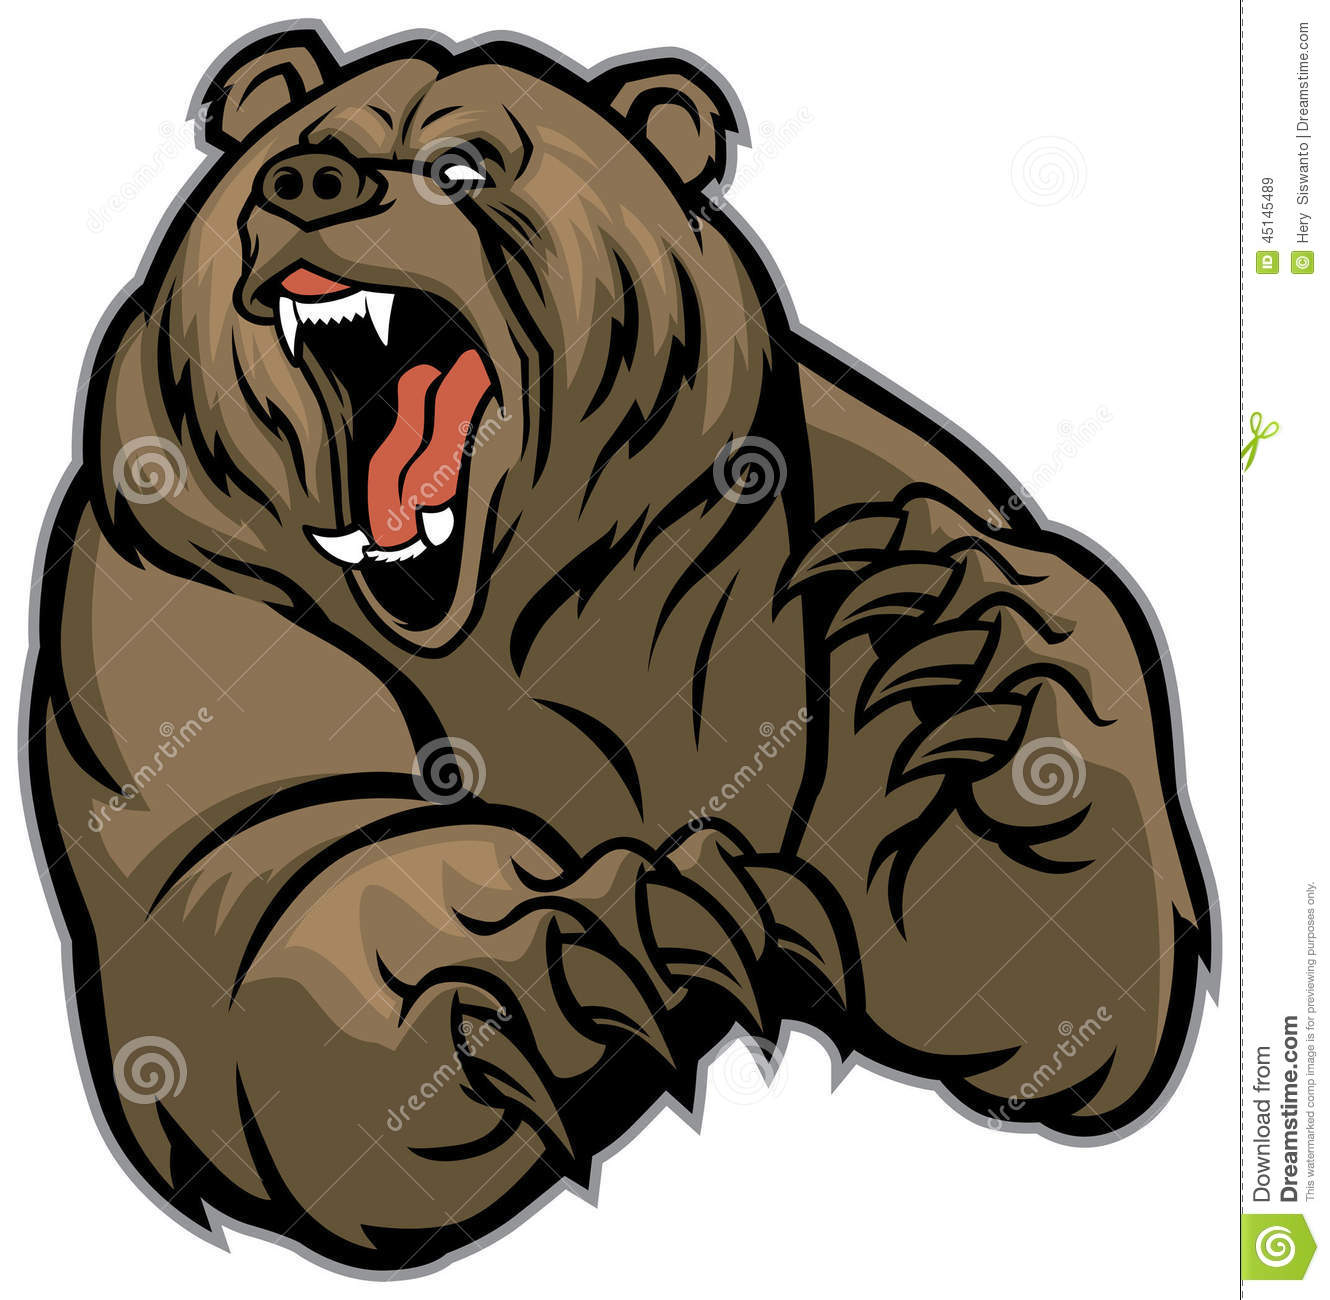 hight resolution of grizzly bear mascot stock illustrations 2 477 grizzly bear mascot stock illustrations vectors clipart dreamstime